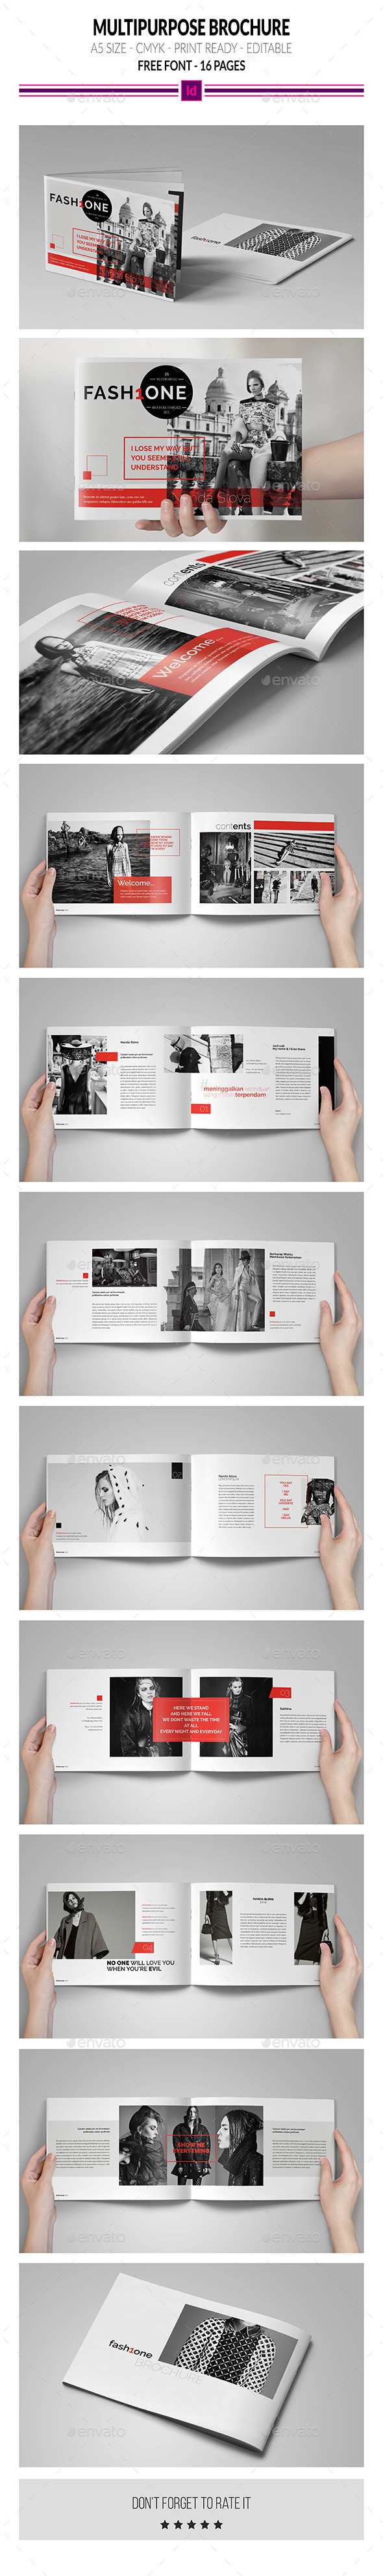 GraphicRiver Multipurpose Brochure Template 10481300